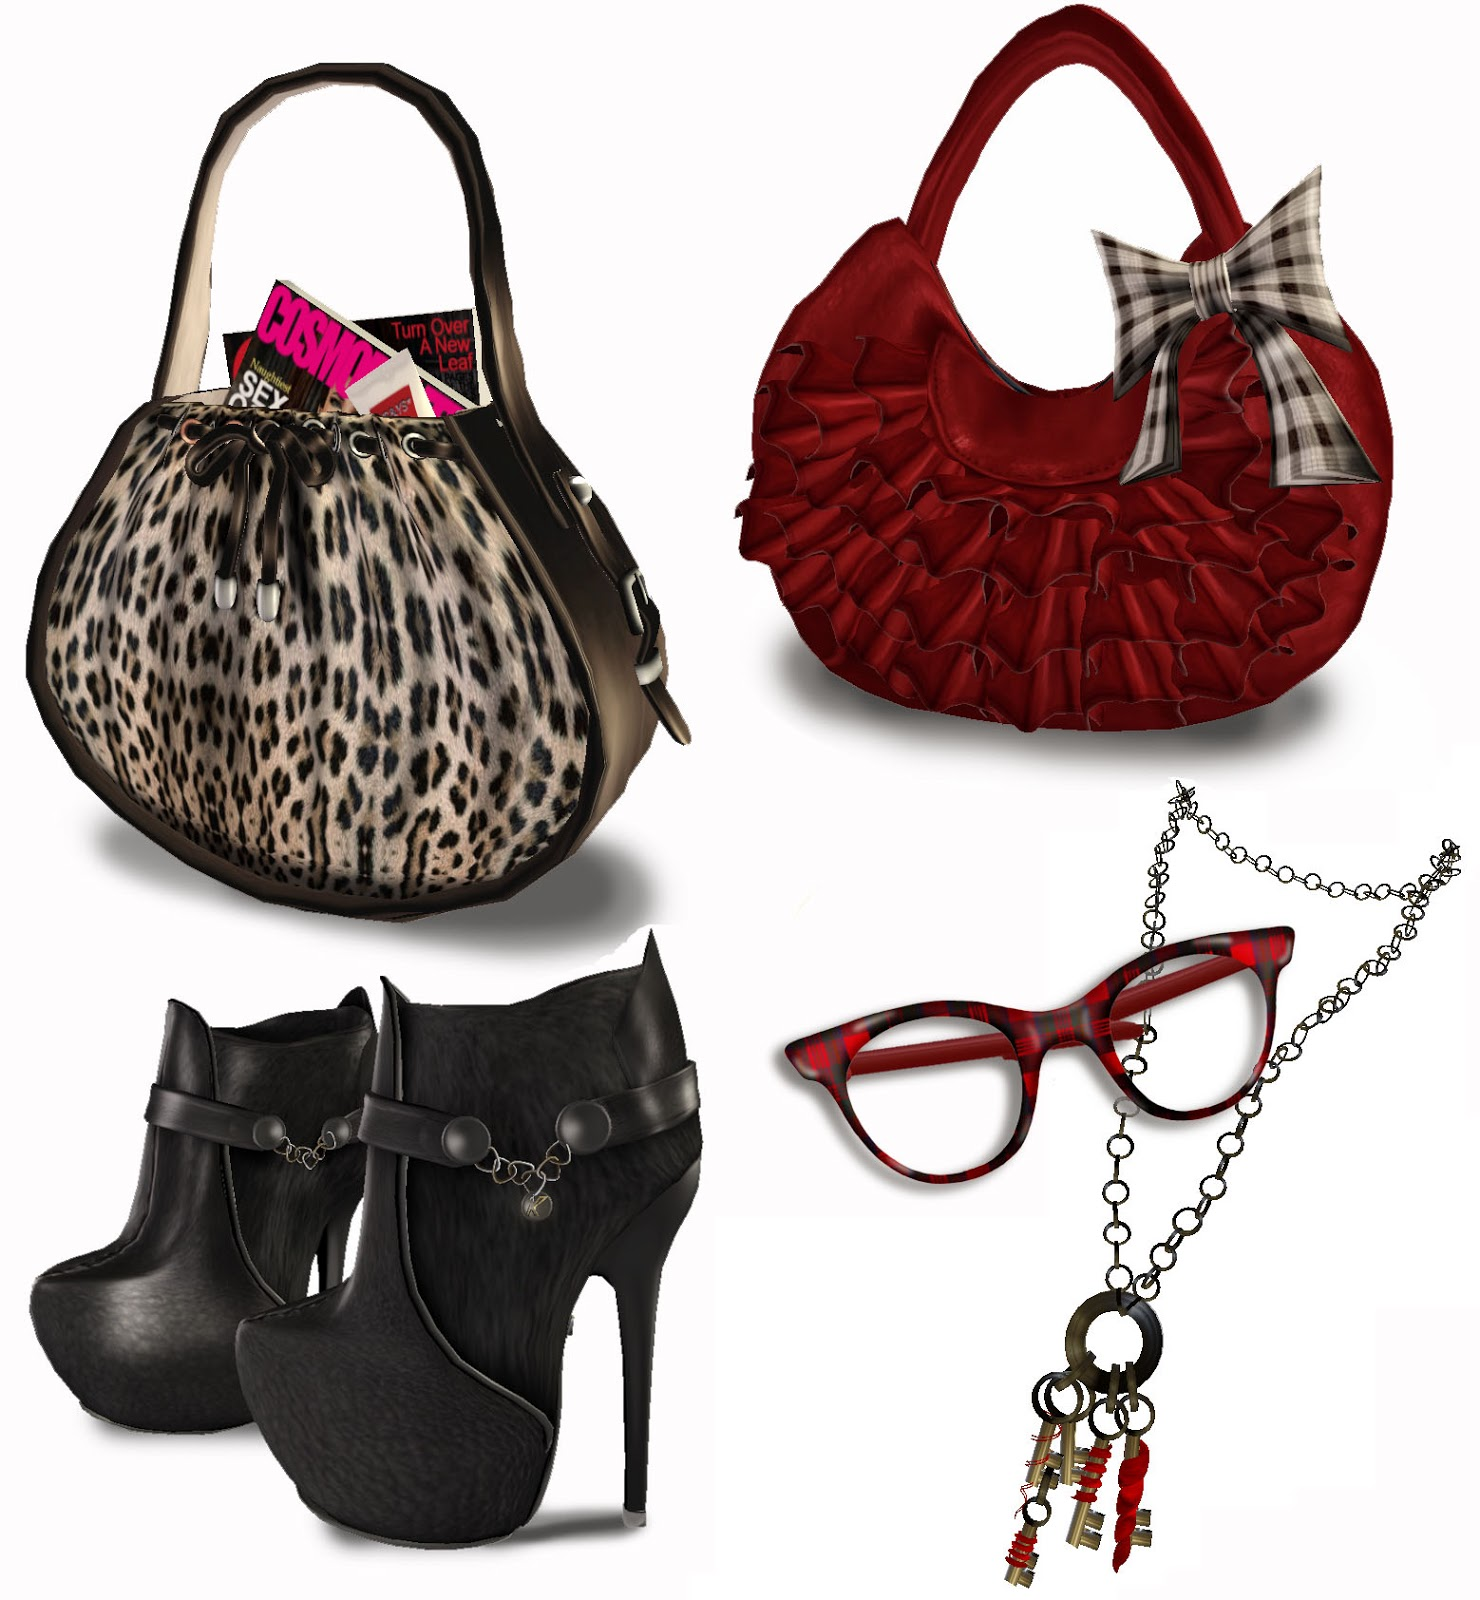 Shop a great selection of Women's Accessories at Nordstrom Rack. Find designer Women's Accessories up to 70% off and get free shipping on orders over $